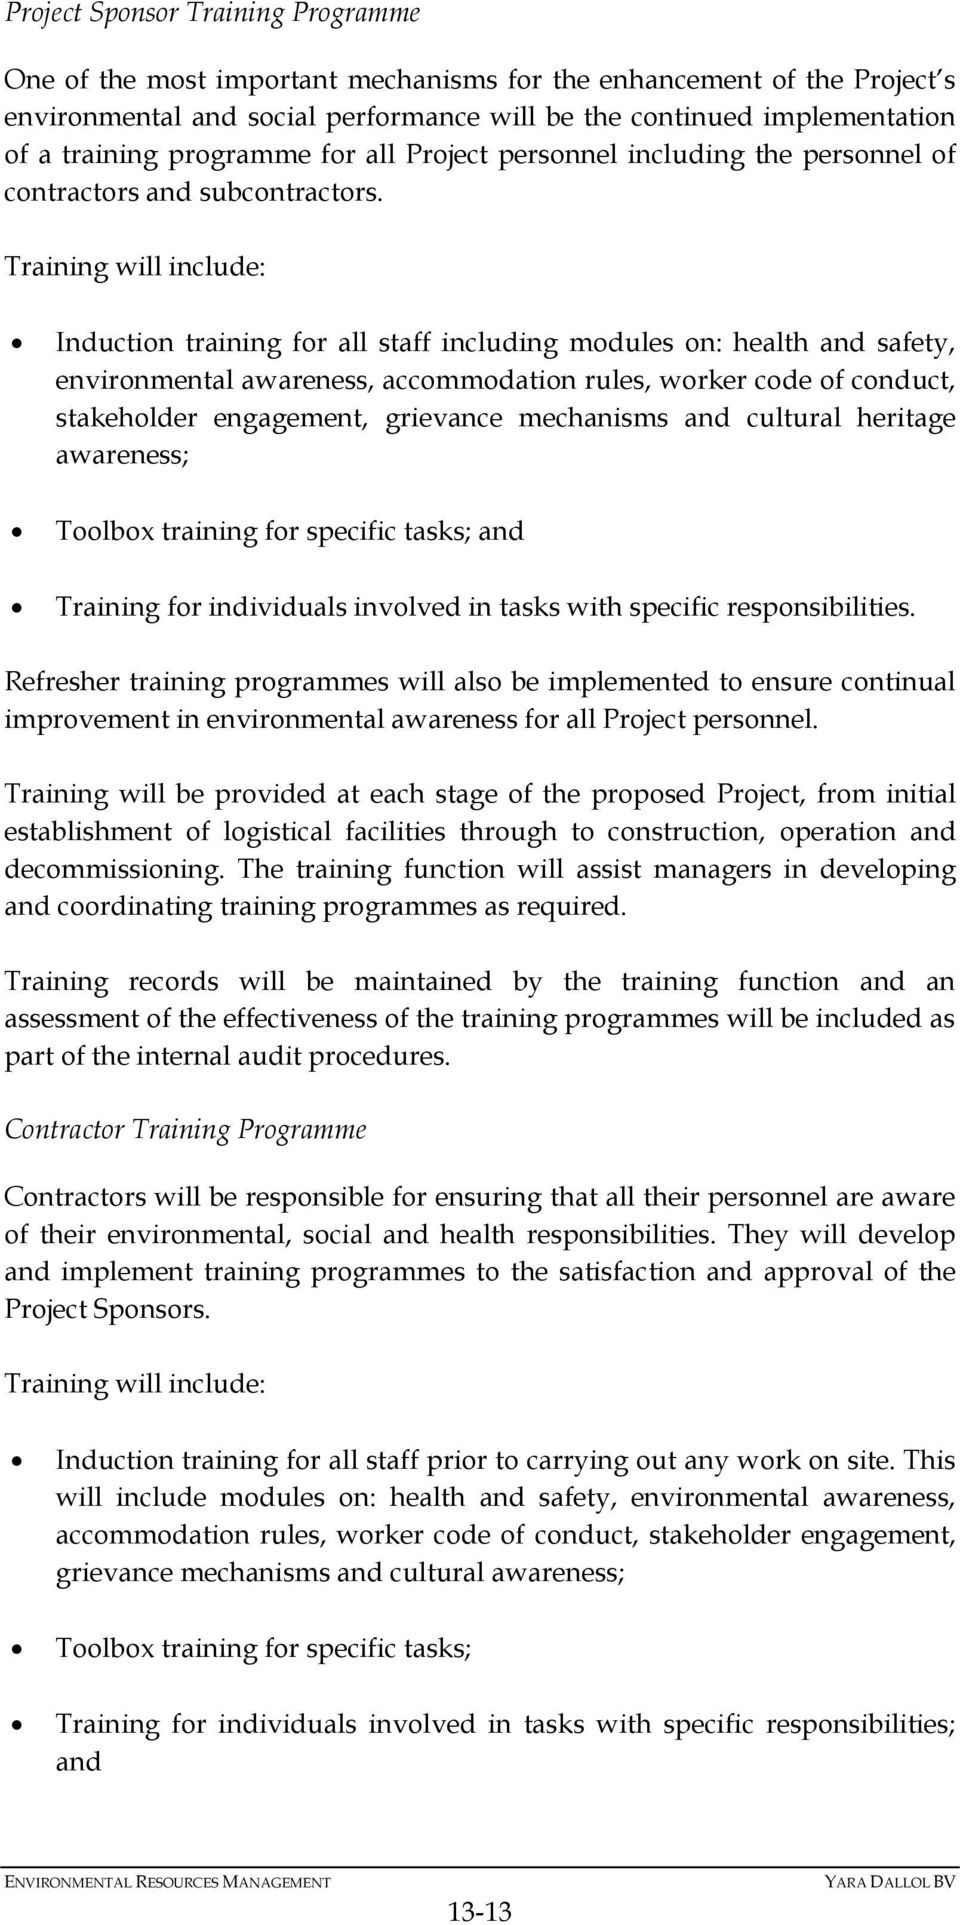 Training will include: Induction training for all staff including modules on: health and safety, environmental awareness, accommodation rules, worker code of conduct, stakeholder engagement,